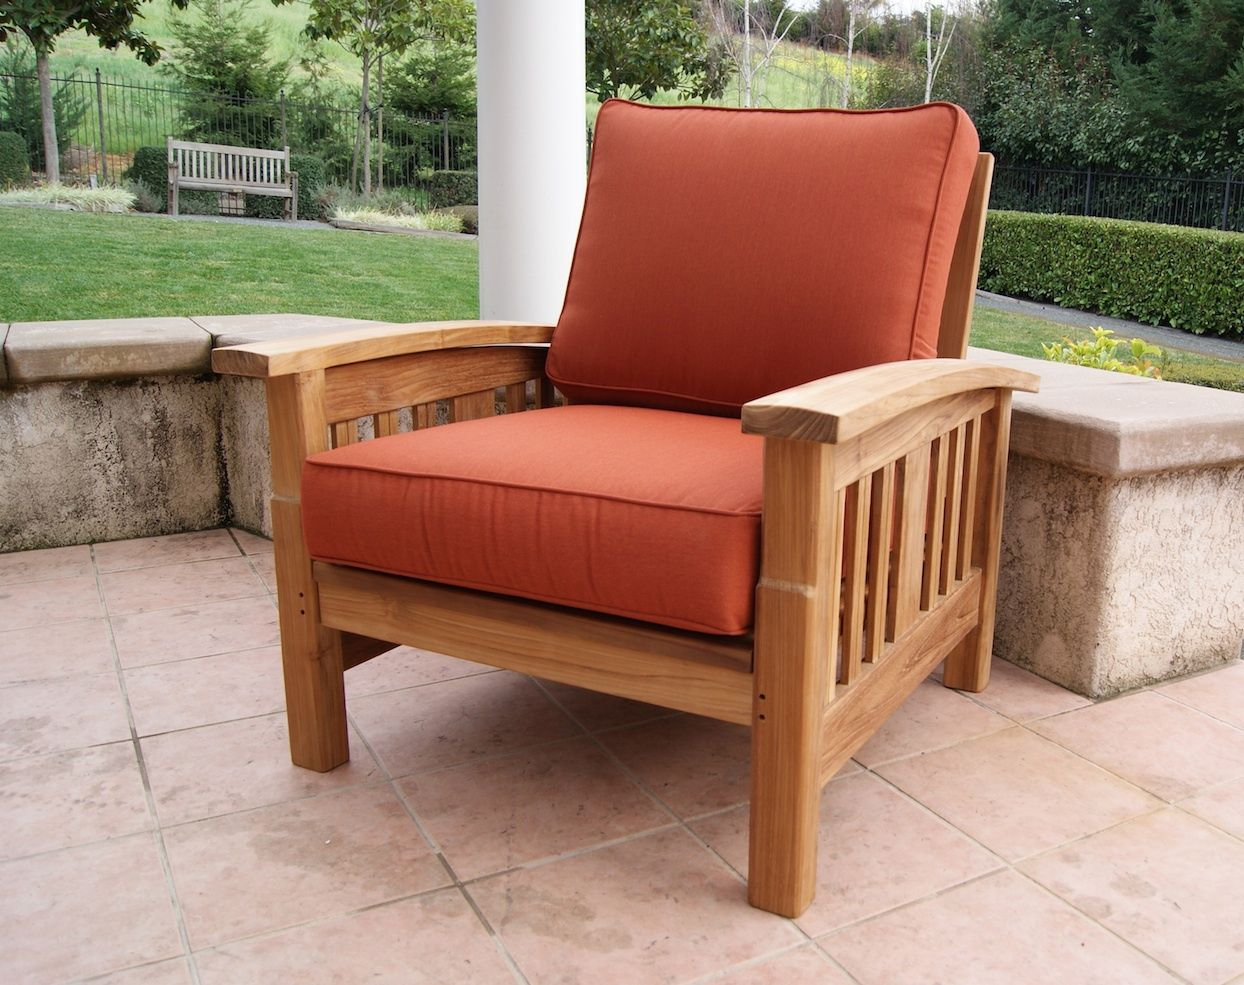 mission style outdoor furniture best home furniture check more at rh pinterest com mission style outdoor chairs mission style outdoor furniture